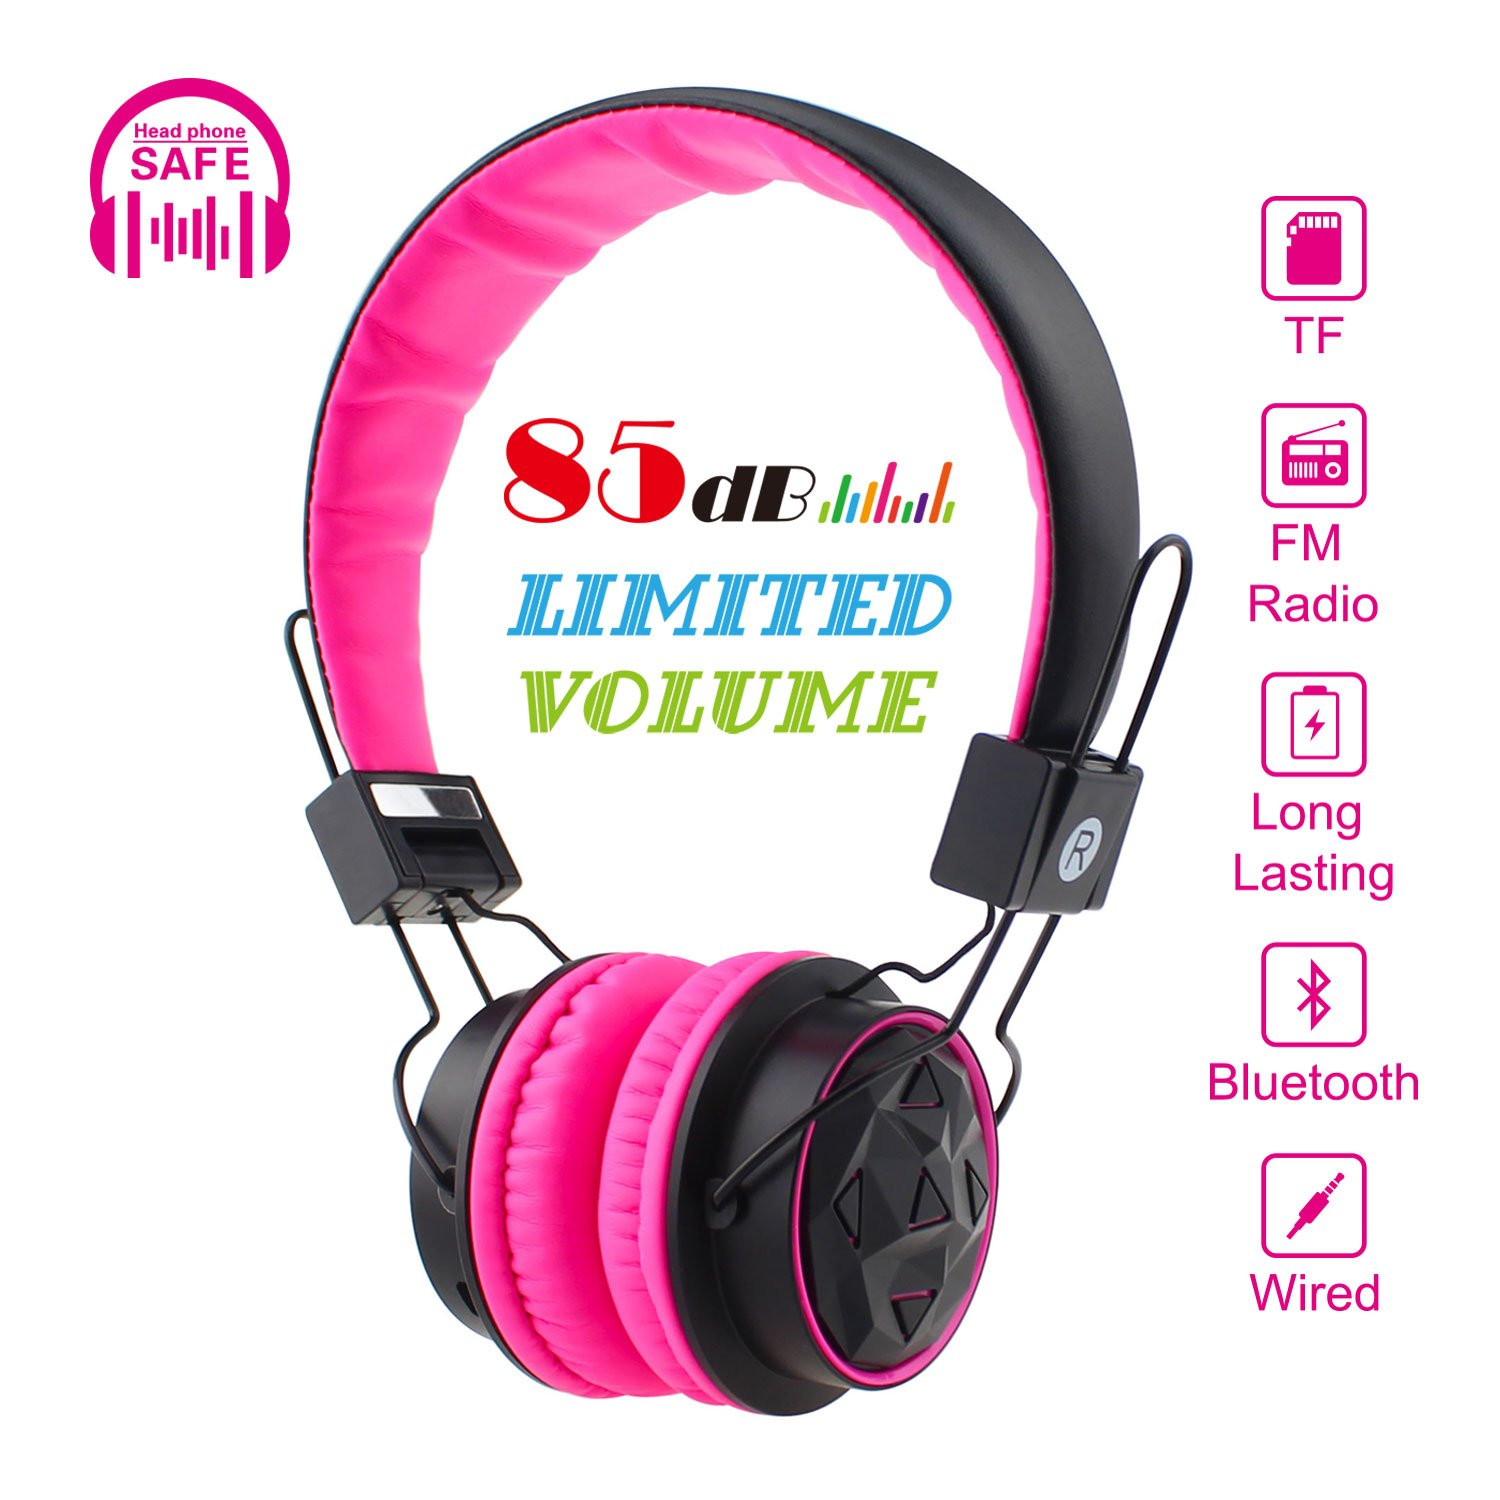 Red Kids Headphones Bluetooth Foldable Wireless//Wired Stereo HD On-Ear Headset with 3.5mm Jack SD Card FM Radio Microphone Volume Control Over Ear Children Headphones for Girls Boys School iPhone